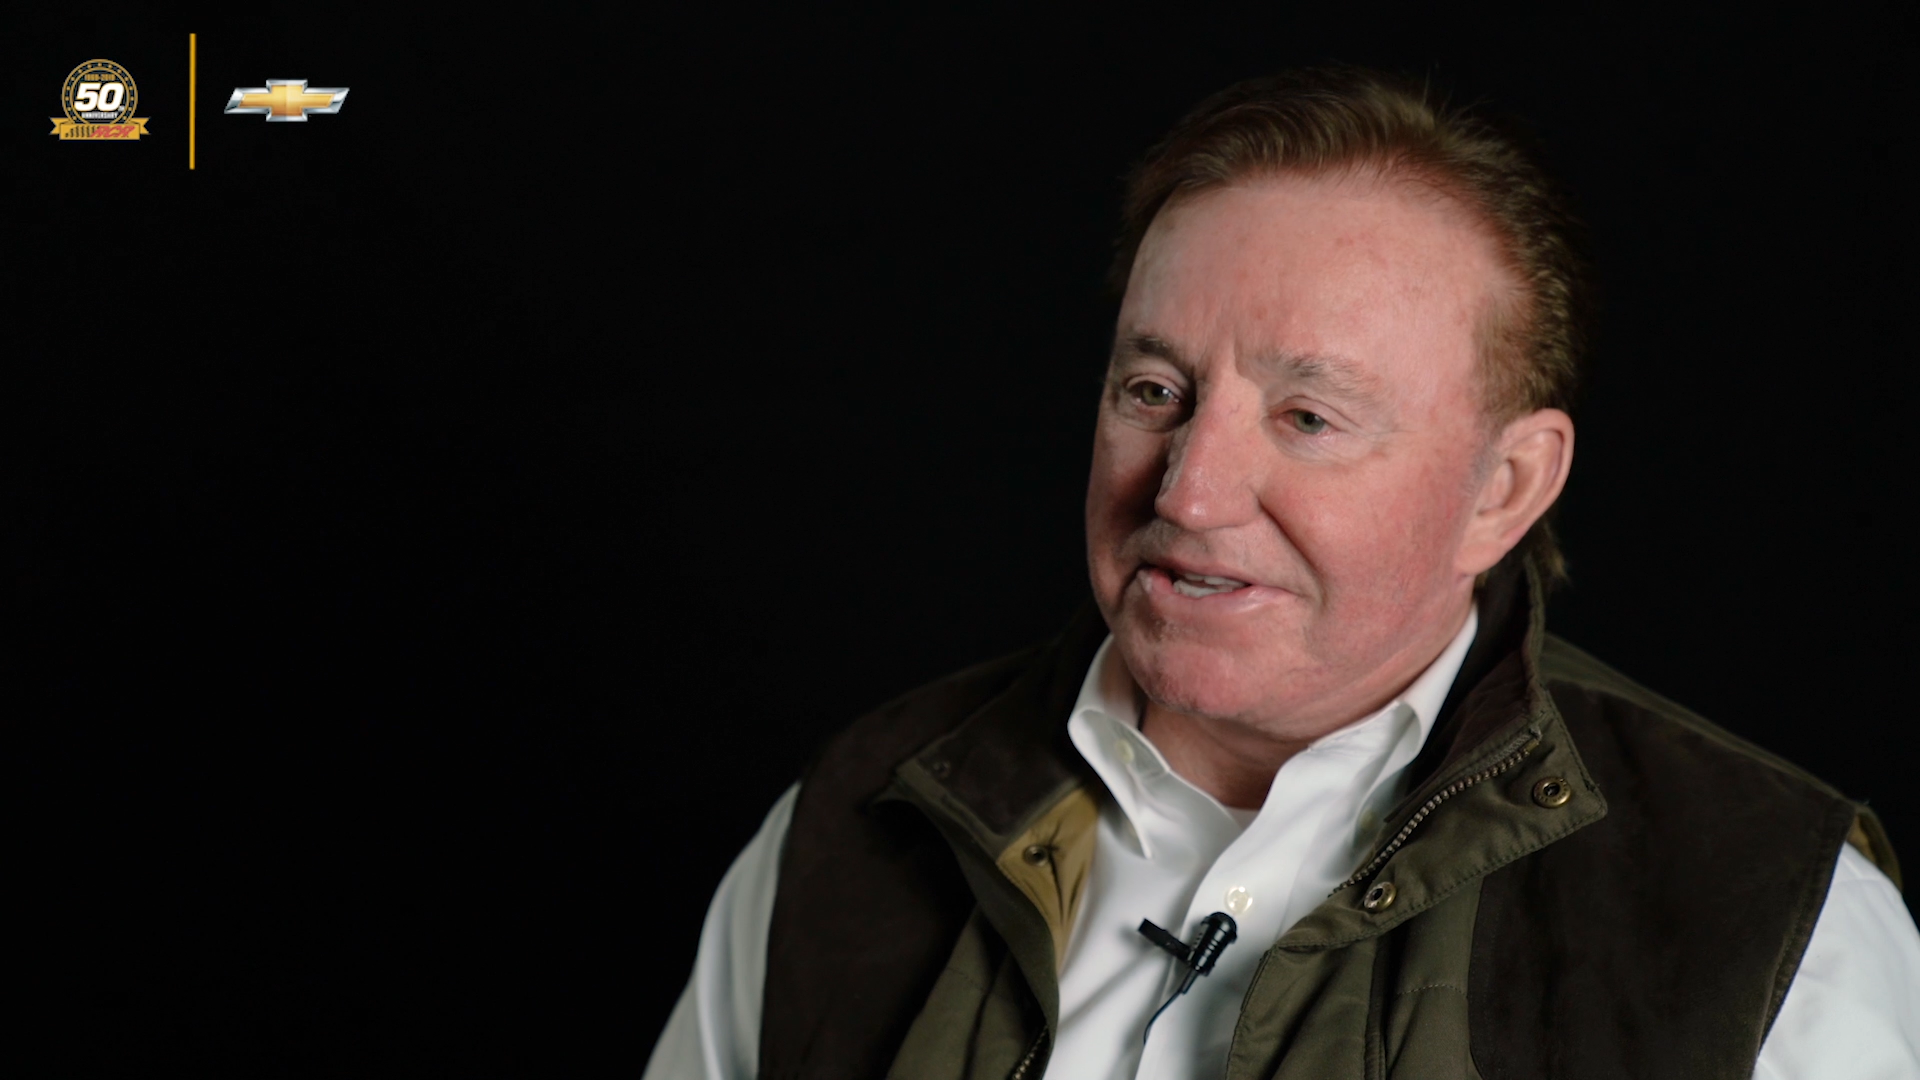 In His Own Words – Richard Childress: A Changing Business Model